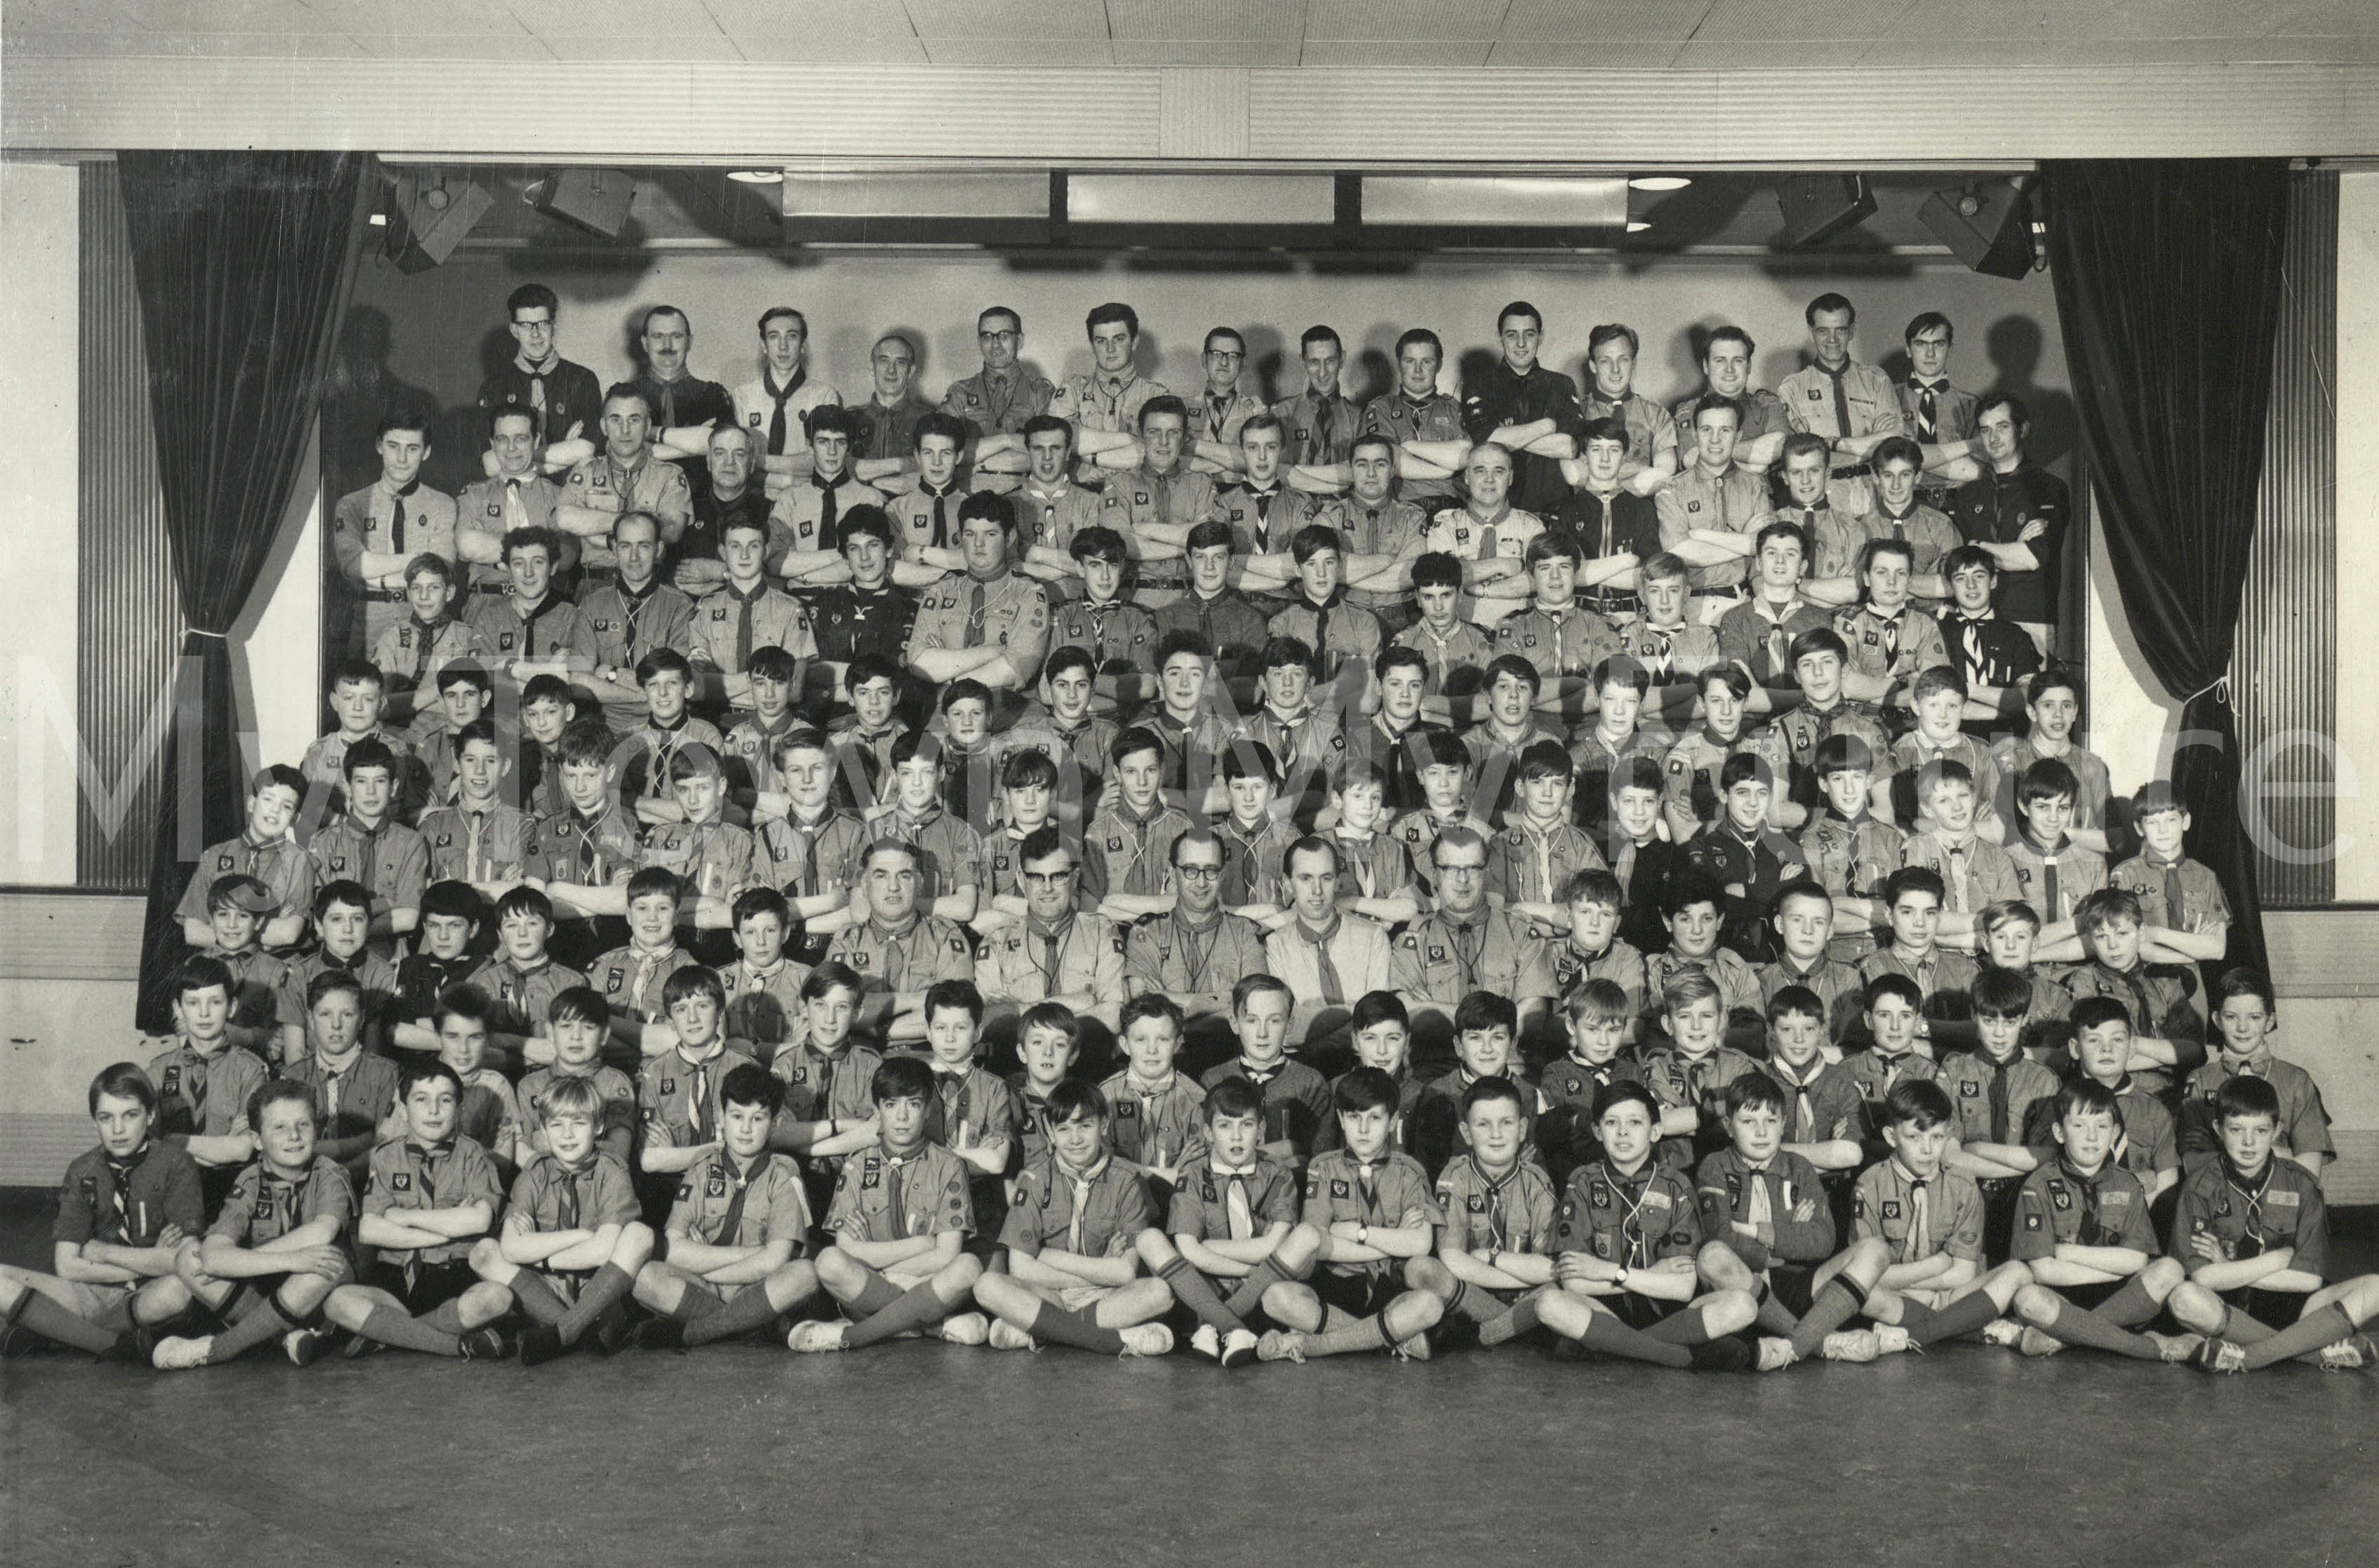 Middlesbrough Scouts Gang Show 1966